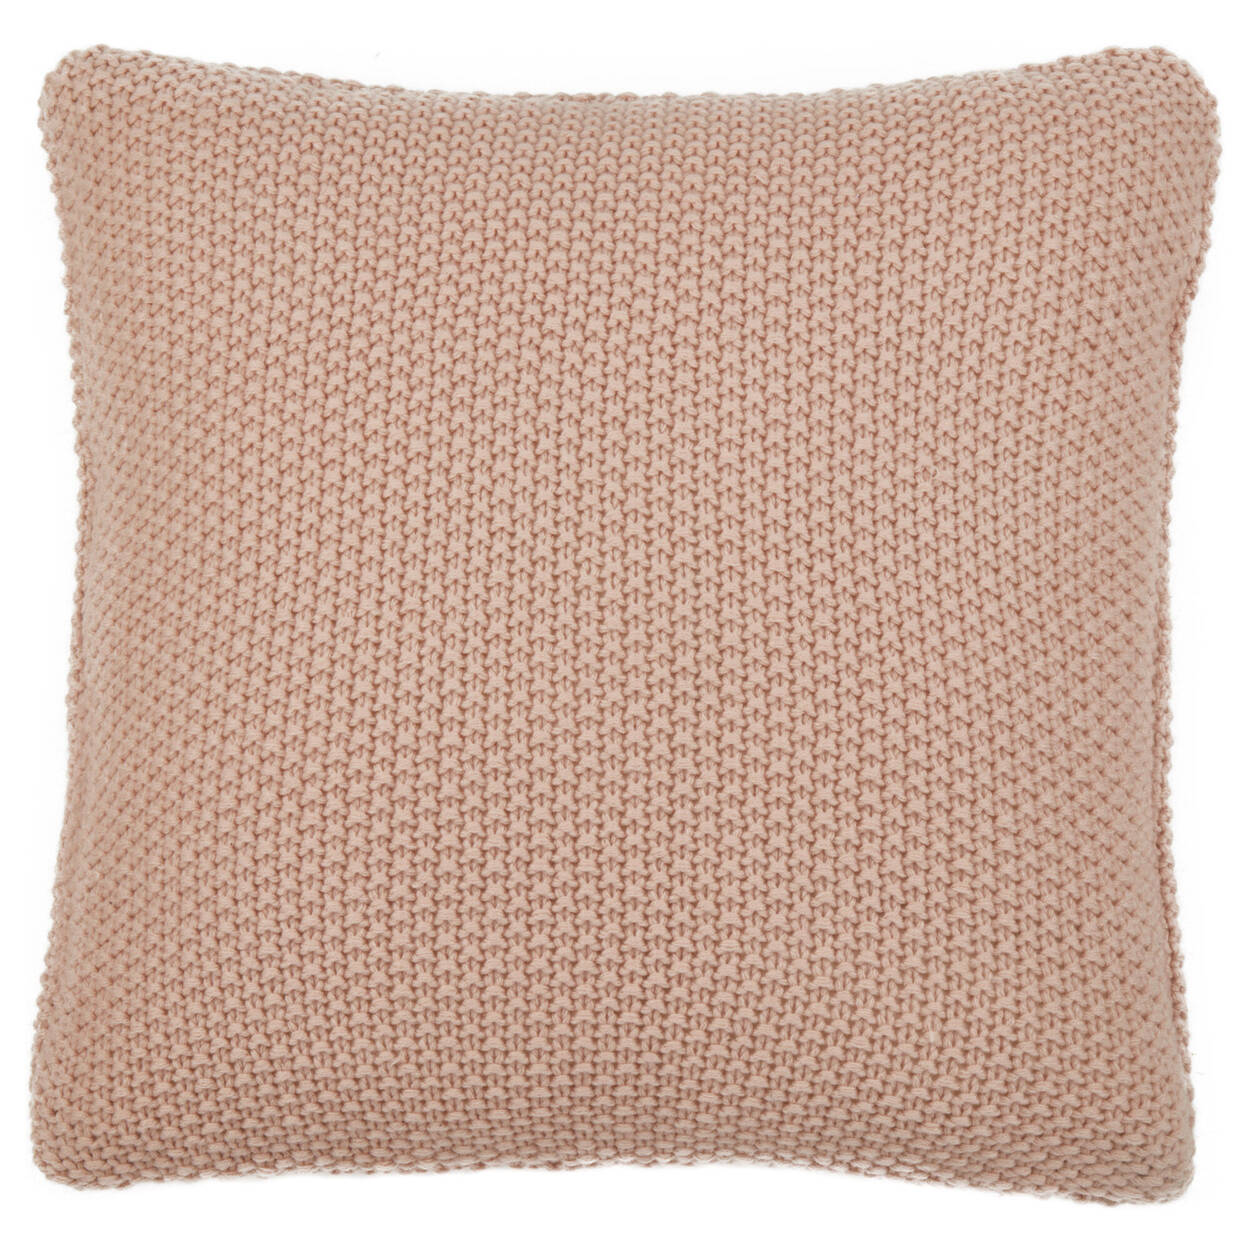 "Dalya Knit Decorative Pillow 18"" X 18"""